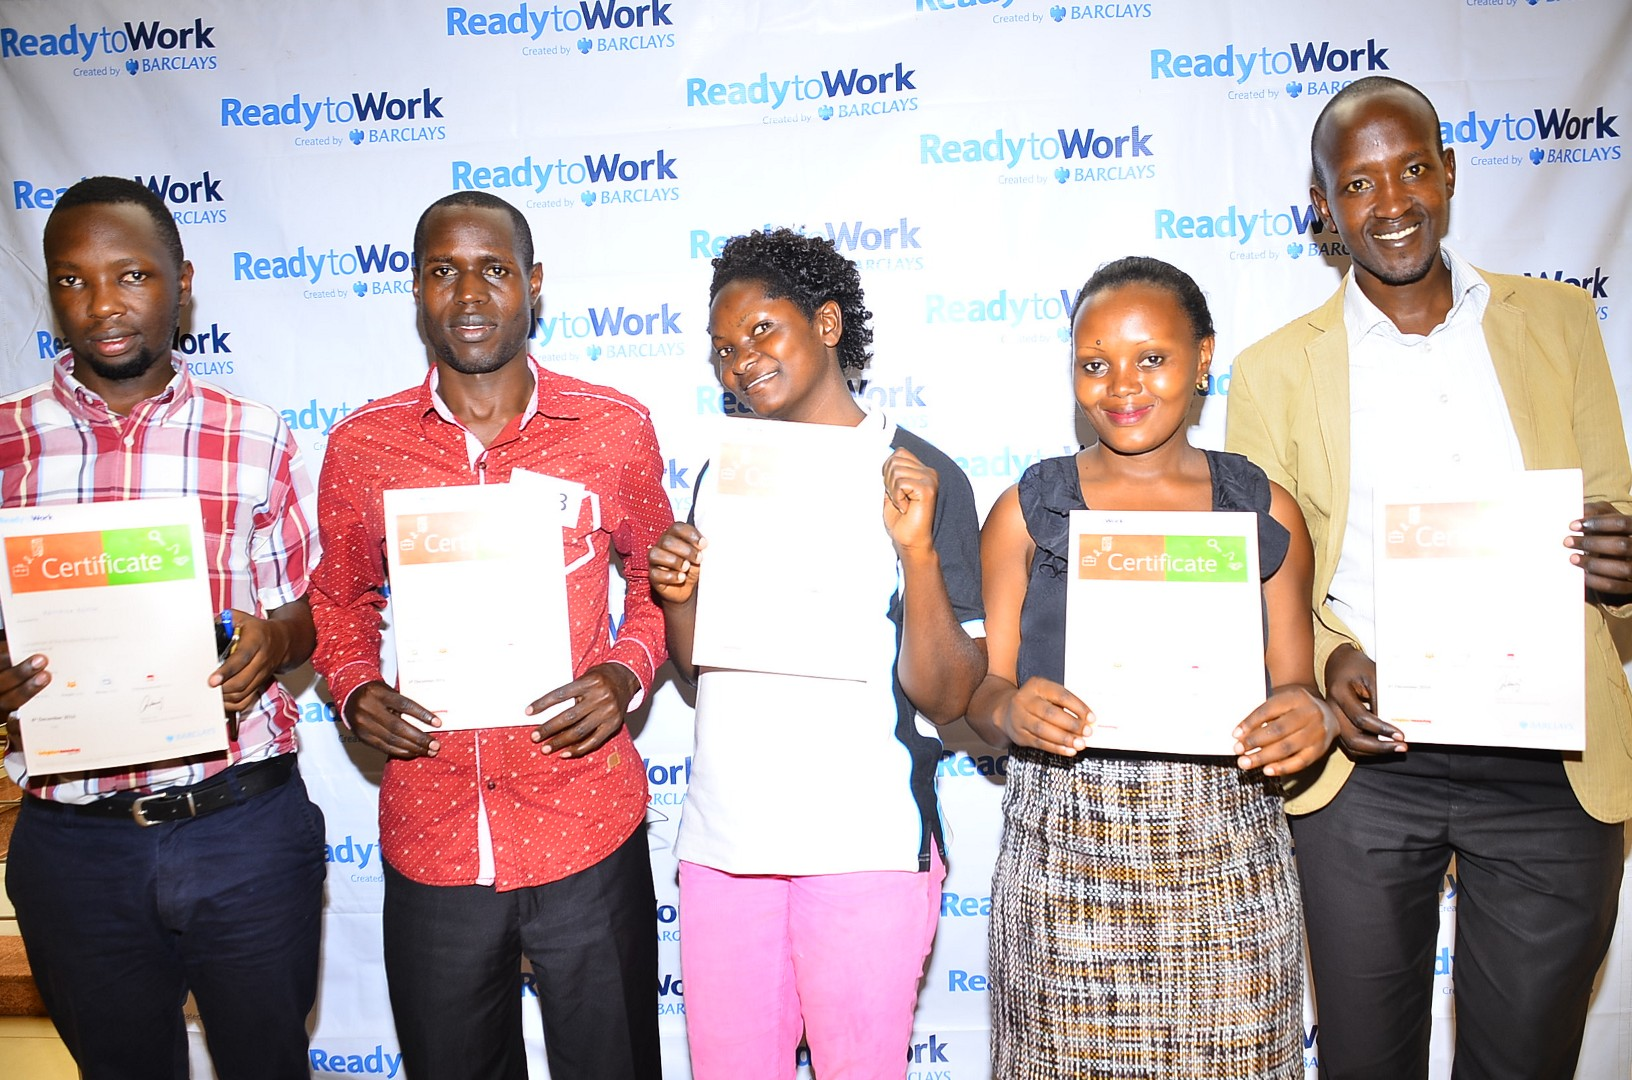 (L-R) Kwikiriza Benson, Erone Ronali, Ahirirwe Olivah, Atuhaire Rahab and Akantambira Kenneth show off their certificates that they received upon completion of the ReadytoWork face-to-face free training that commenced on December 5, 2016 at the Hub, Oasis Mall. The training is still ongoing till December 16, 2016